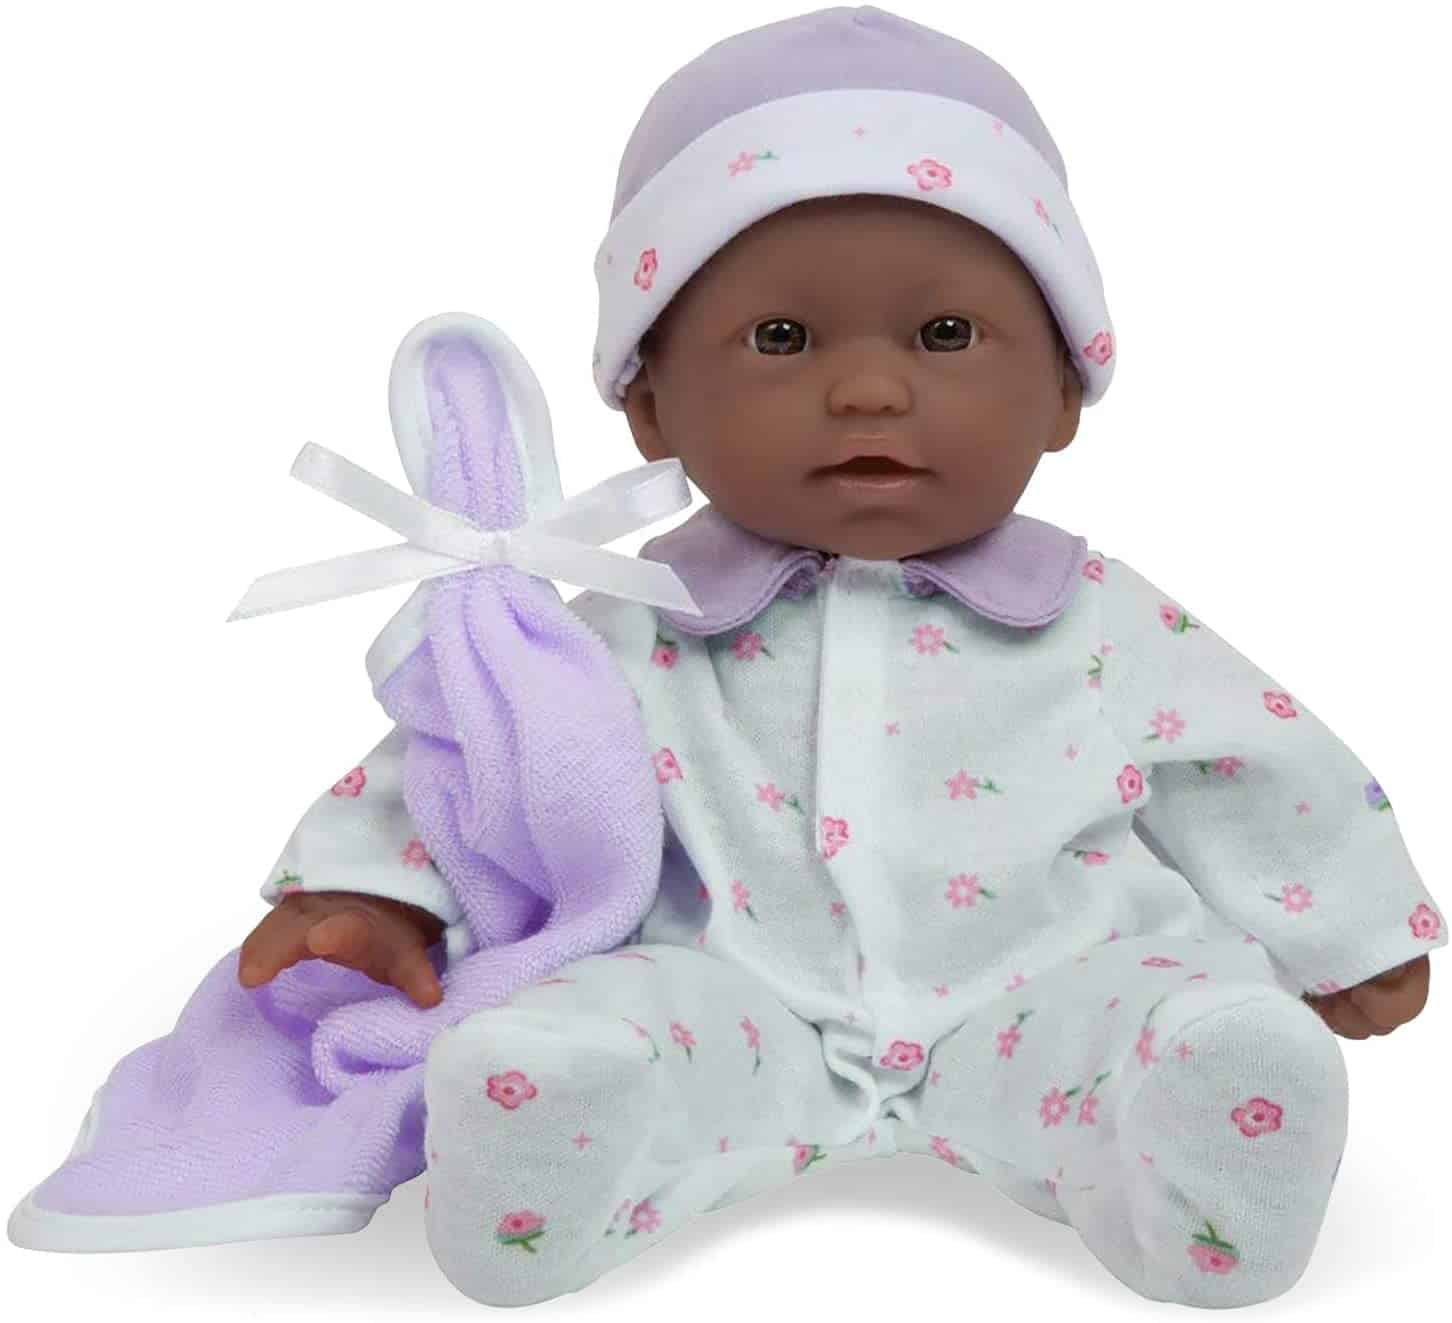 JC Toys La Baby Boutique African American Baby, 11